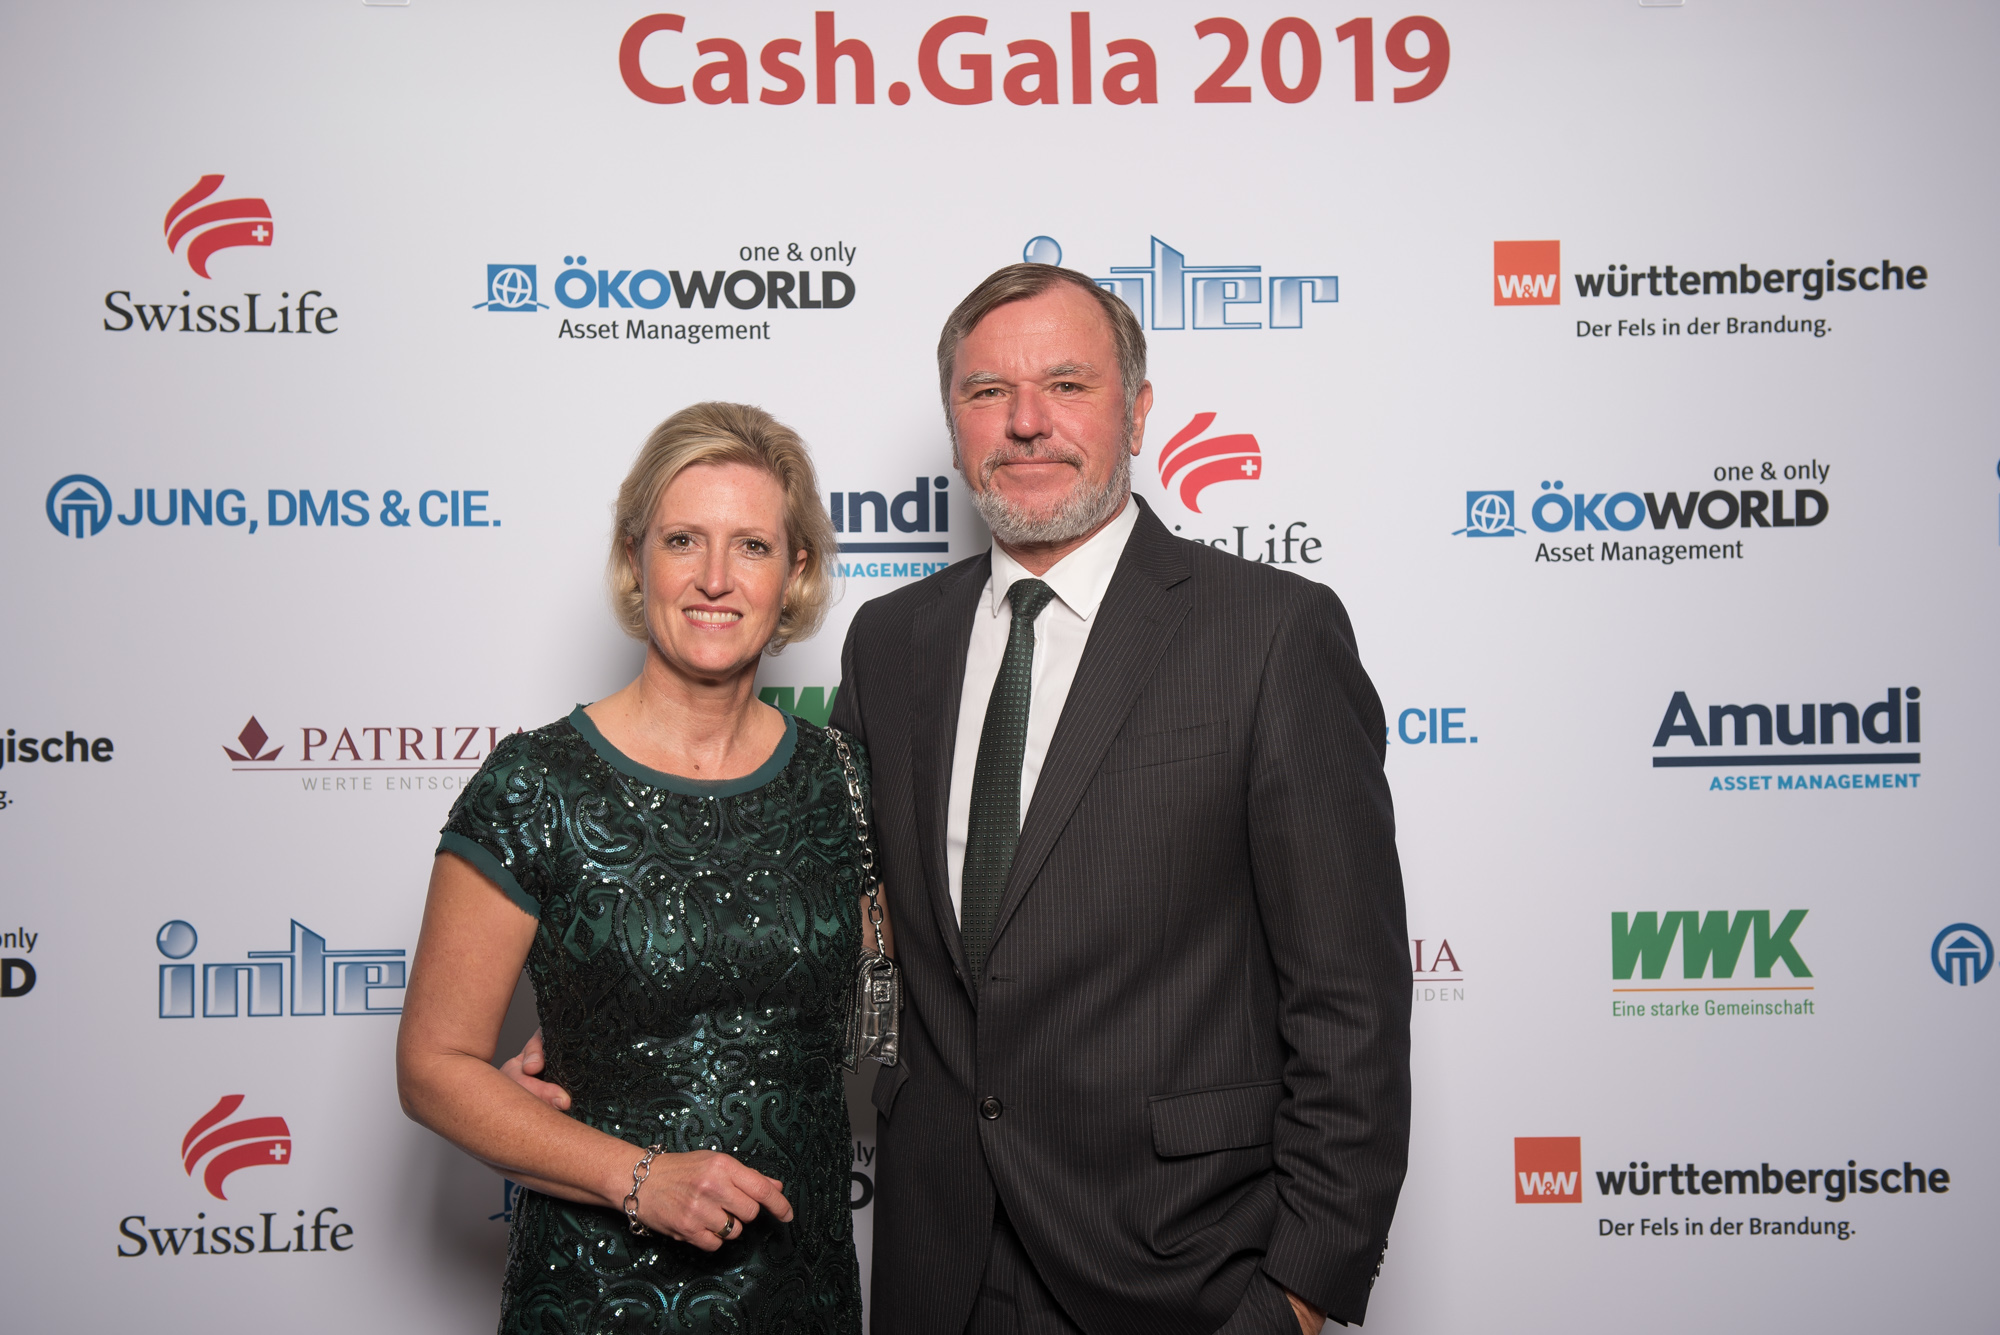 CashGala 2019 0030 AM DSC7029 in Cash.Gala 2019